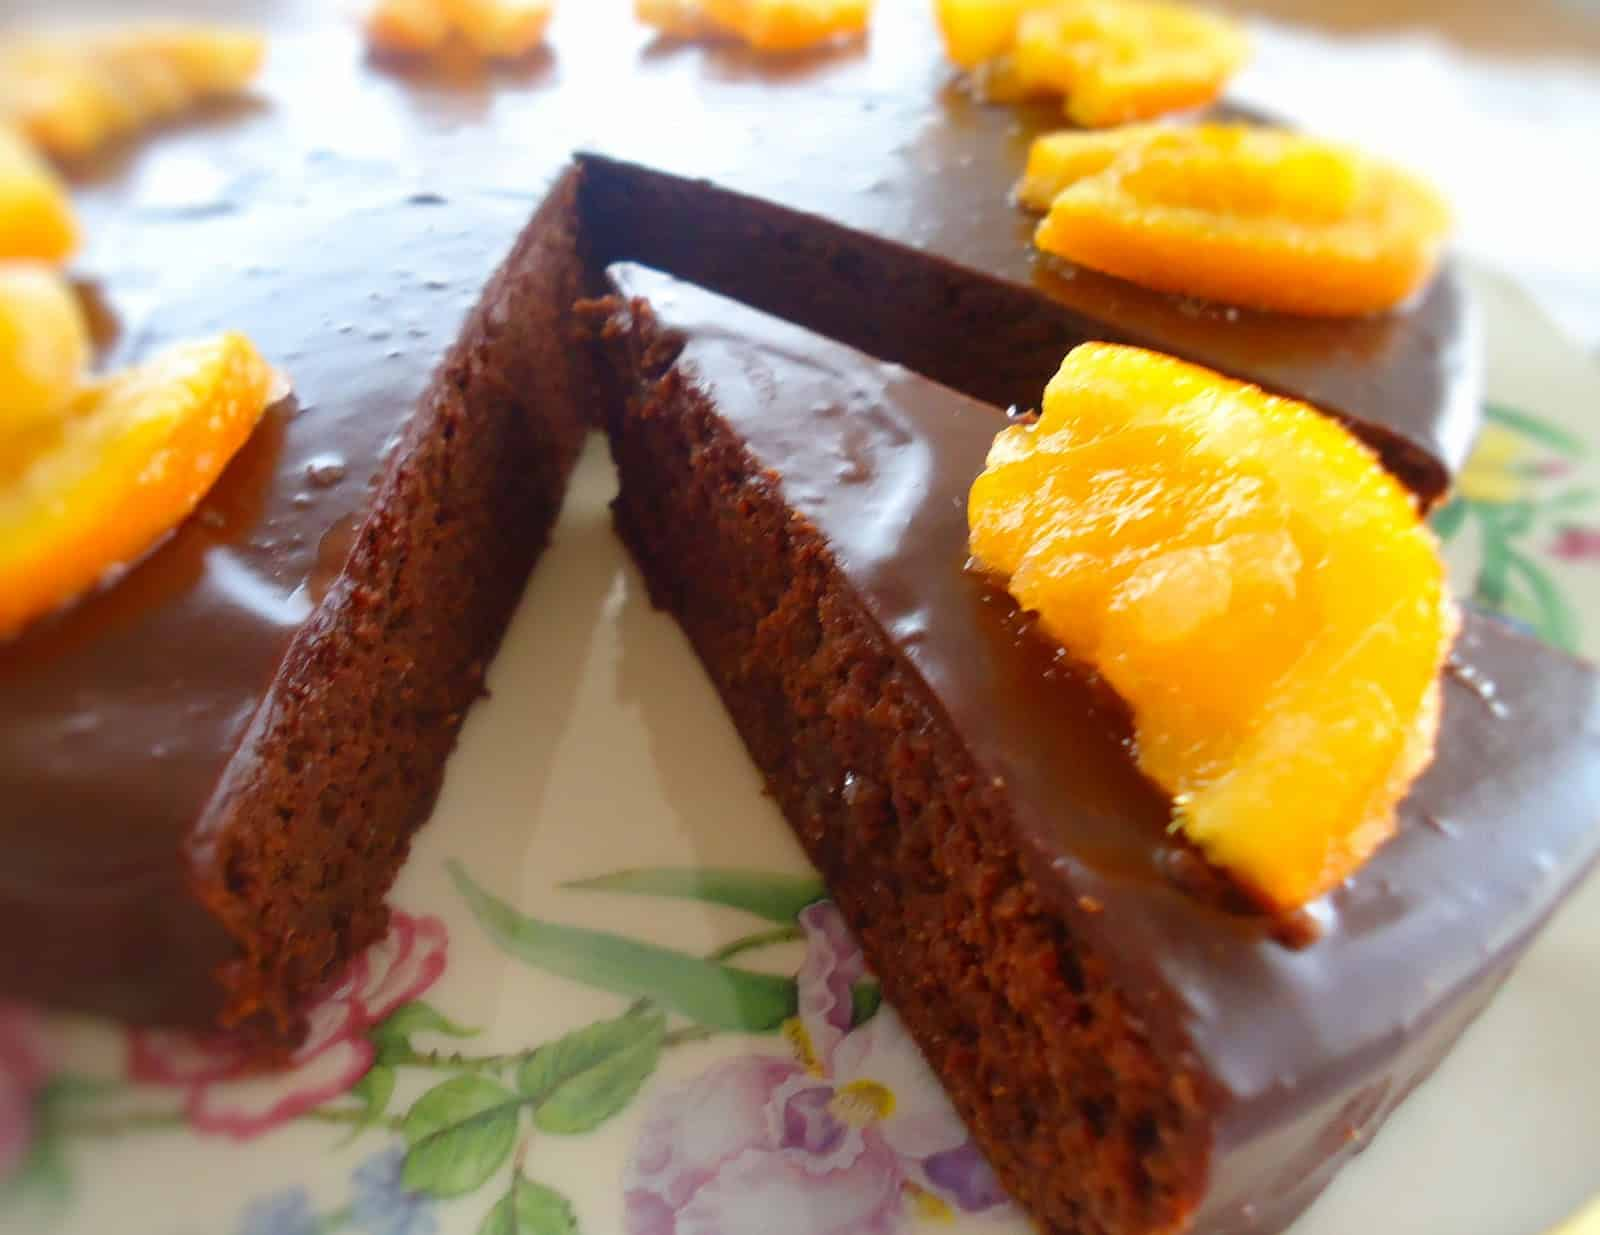 Garbanzo bean chocolate coconut cake